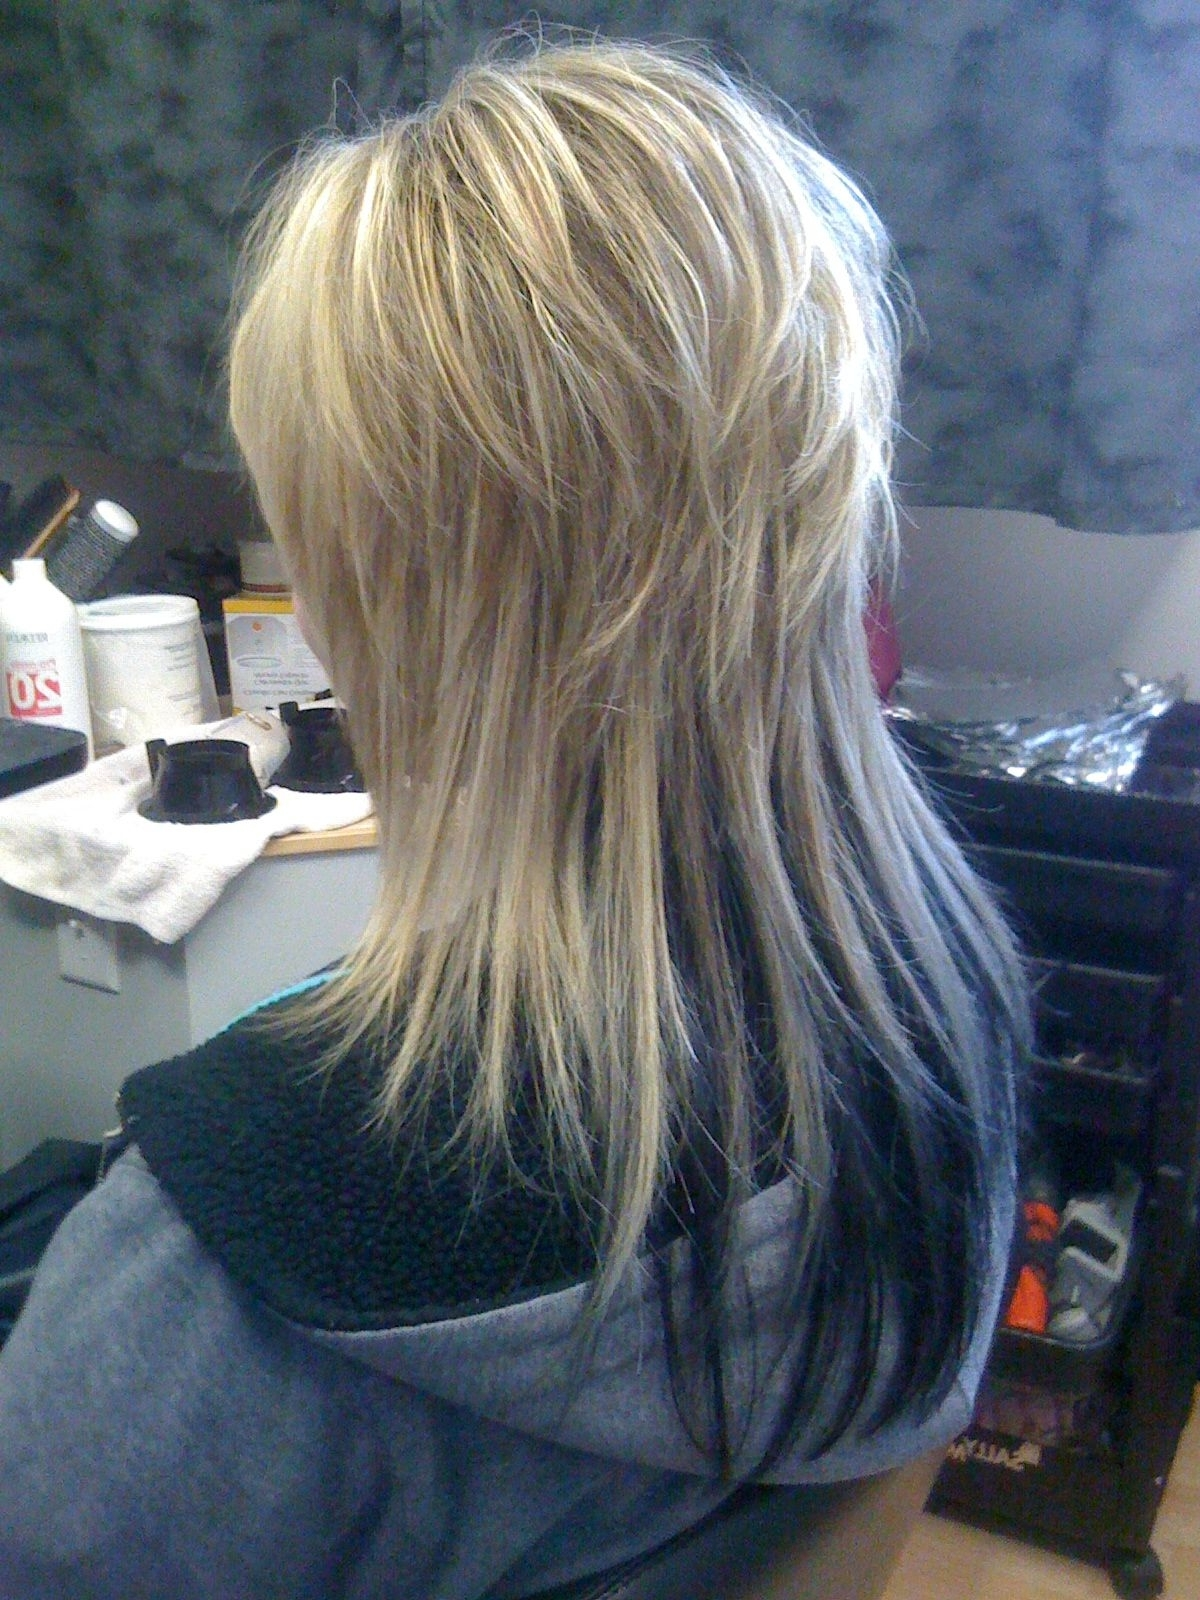 Style That Hair For Well Known Platinum Tresses Blonde Hairstyles With Shaggy Cut (View 17 of 20)